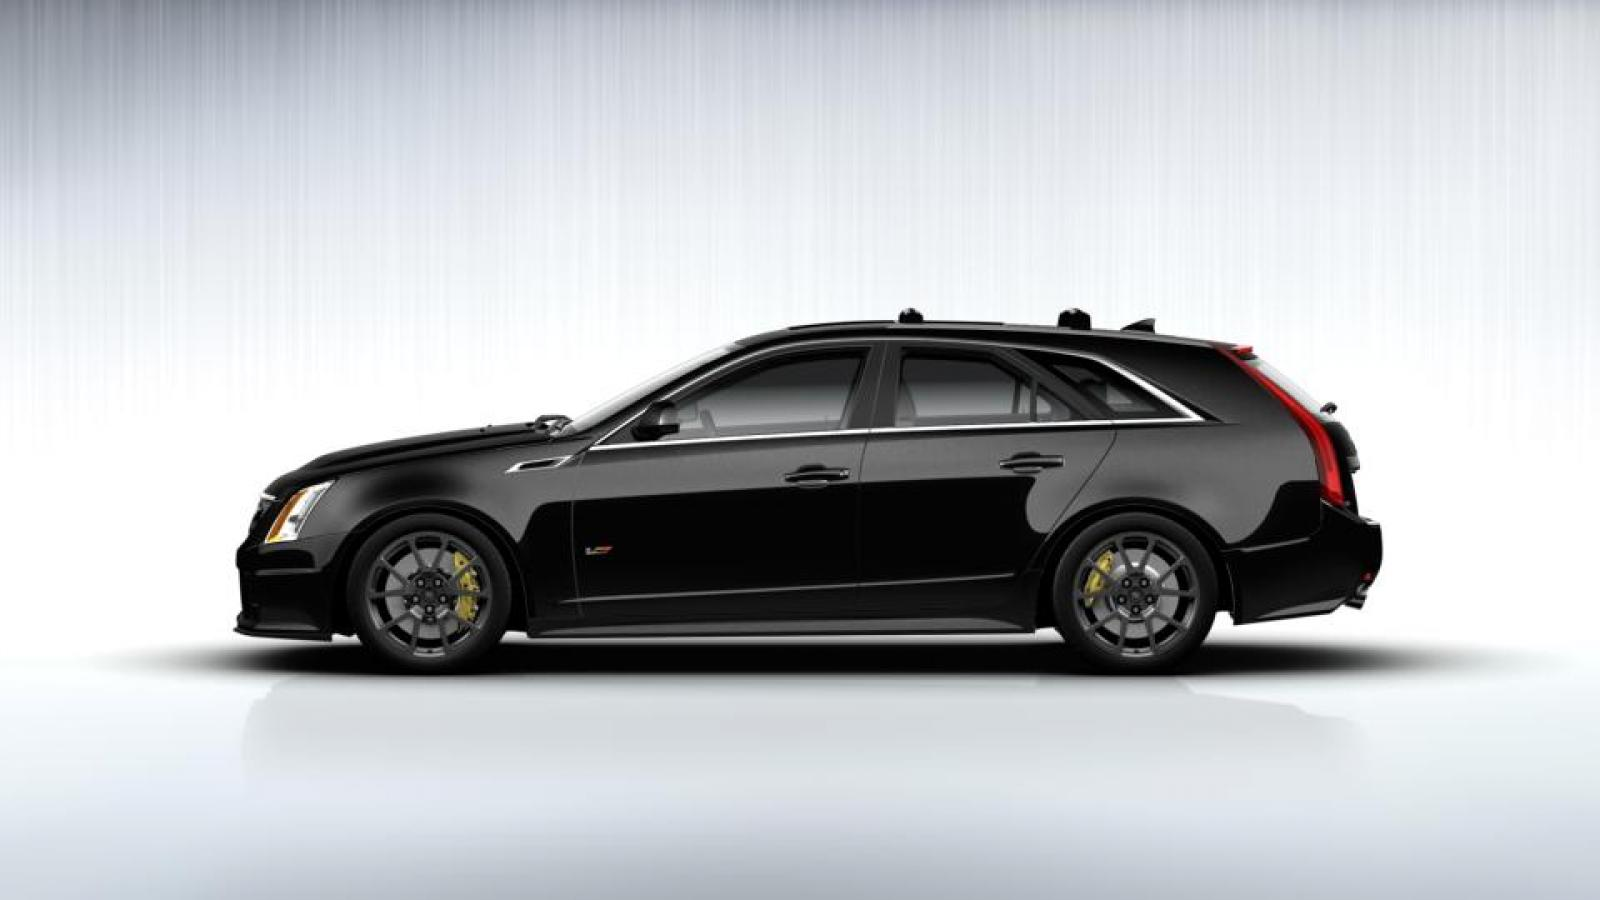 2014 cadillac cts v wagon information and photos zombiedrive. Black Bedroom Furniture Sets. Home Design Ideas